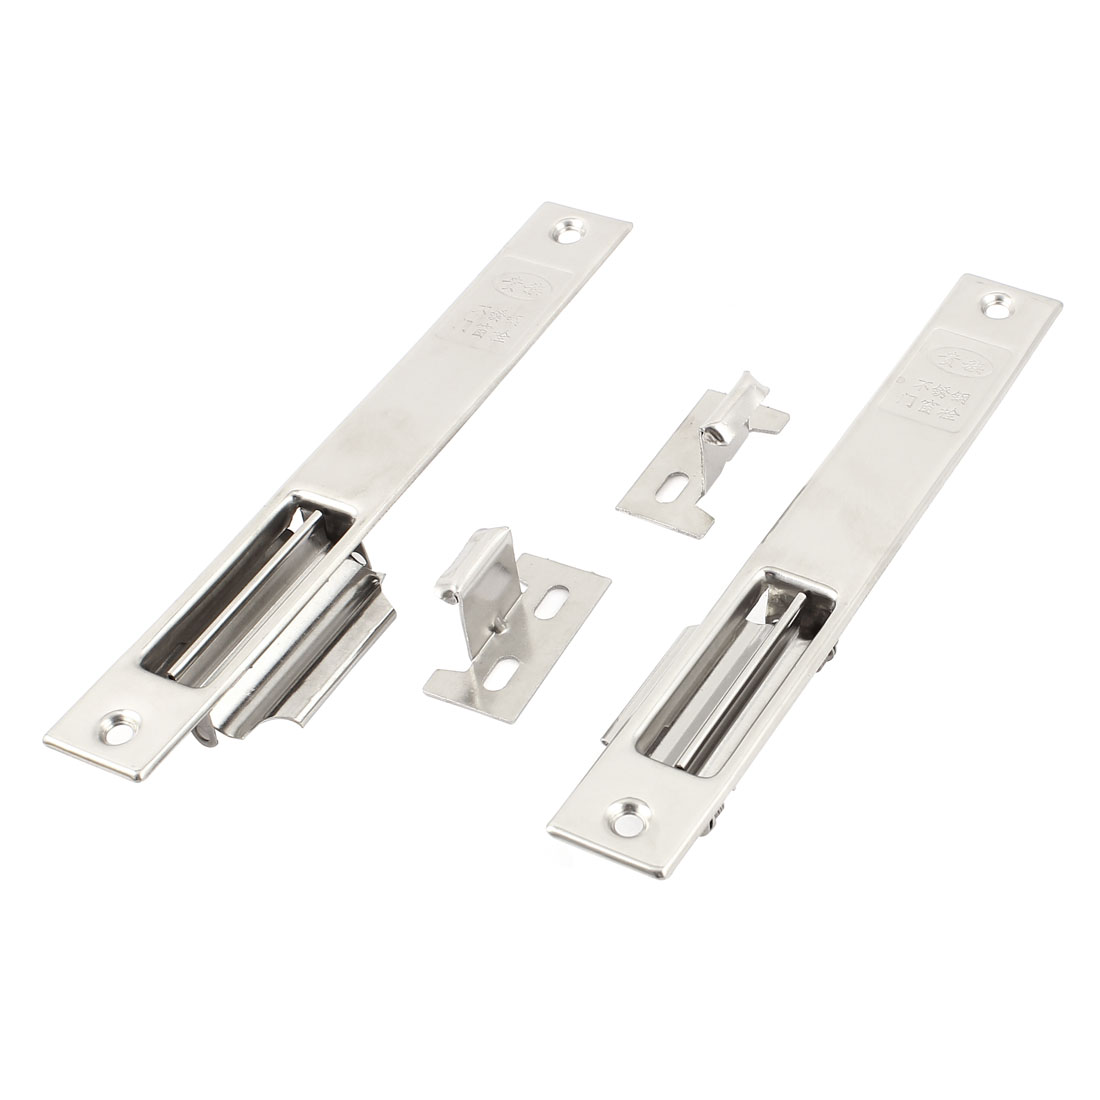 2pcs 192mm Long Aluminium Alloy Rectangular Sliding Closet Window Door Lock Locking Latch